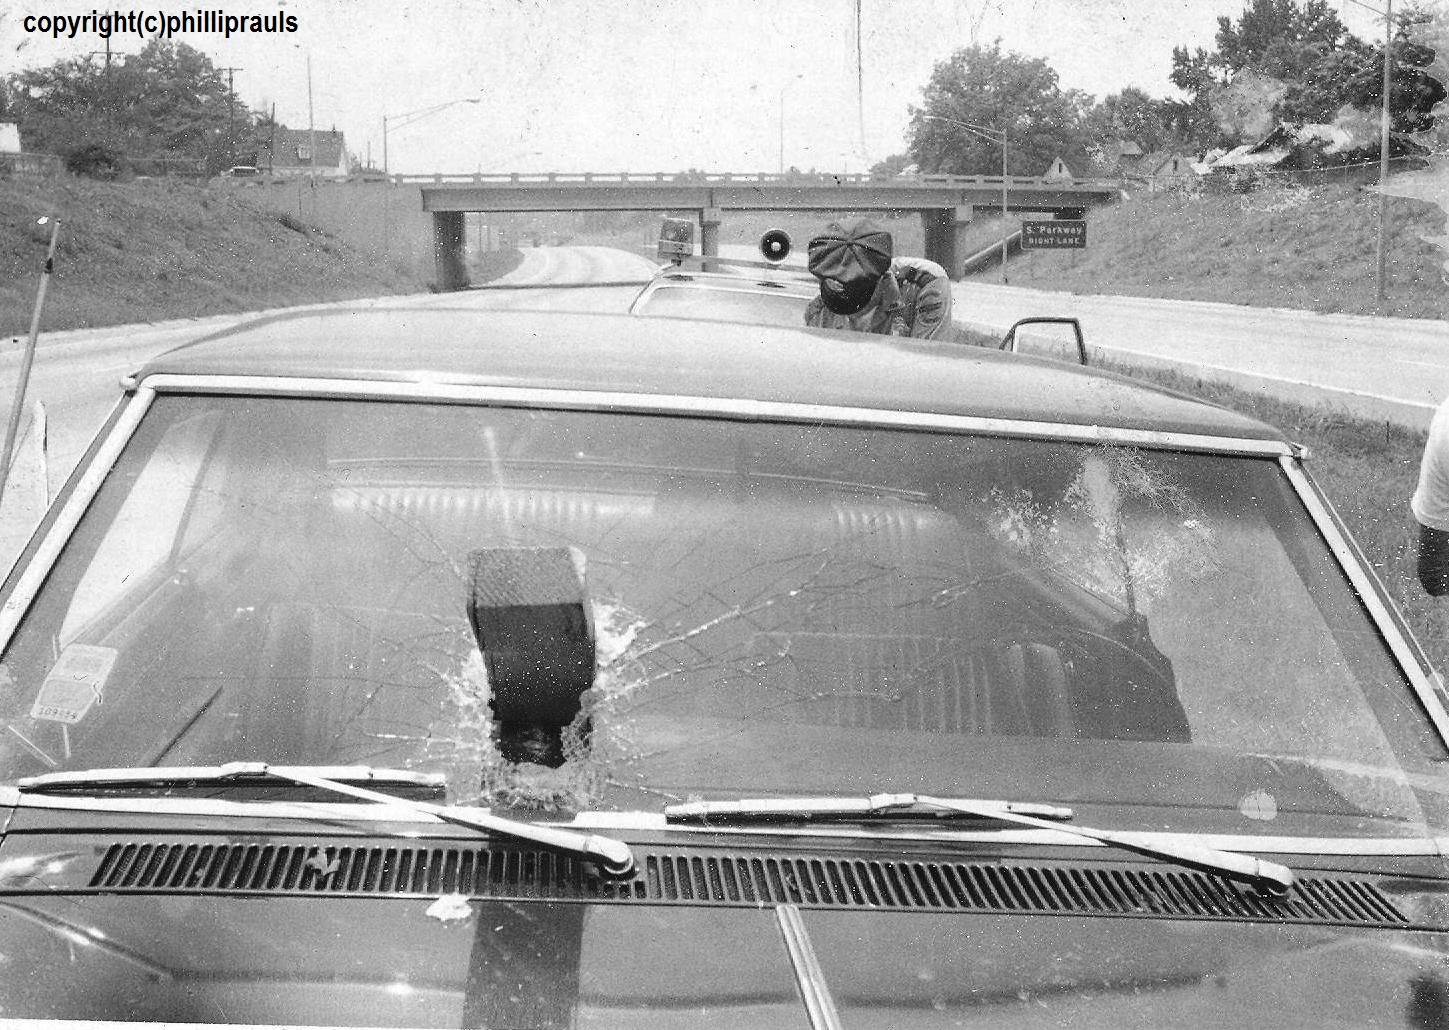 Crime Scene Photos Of Marilyn Monroe Famous crime scene photos